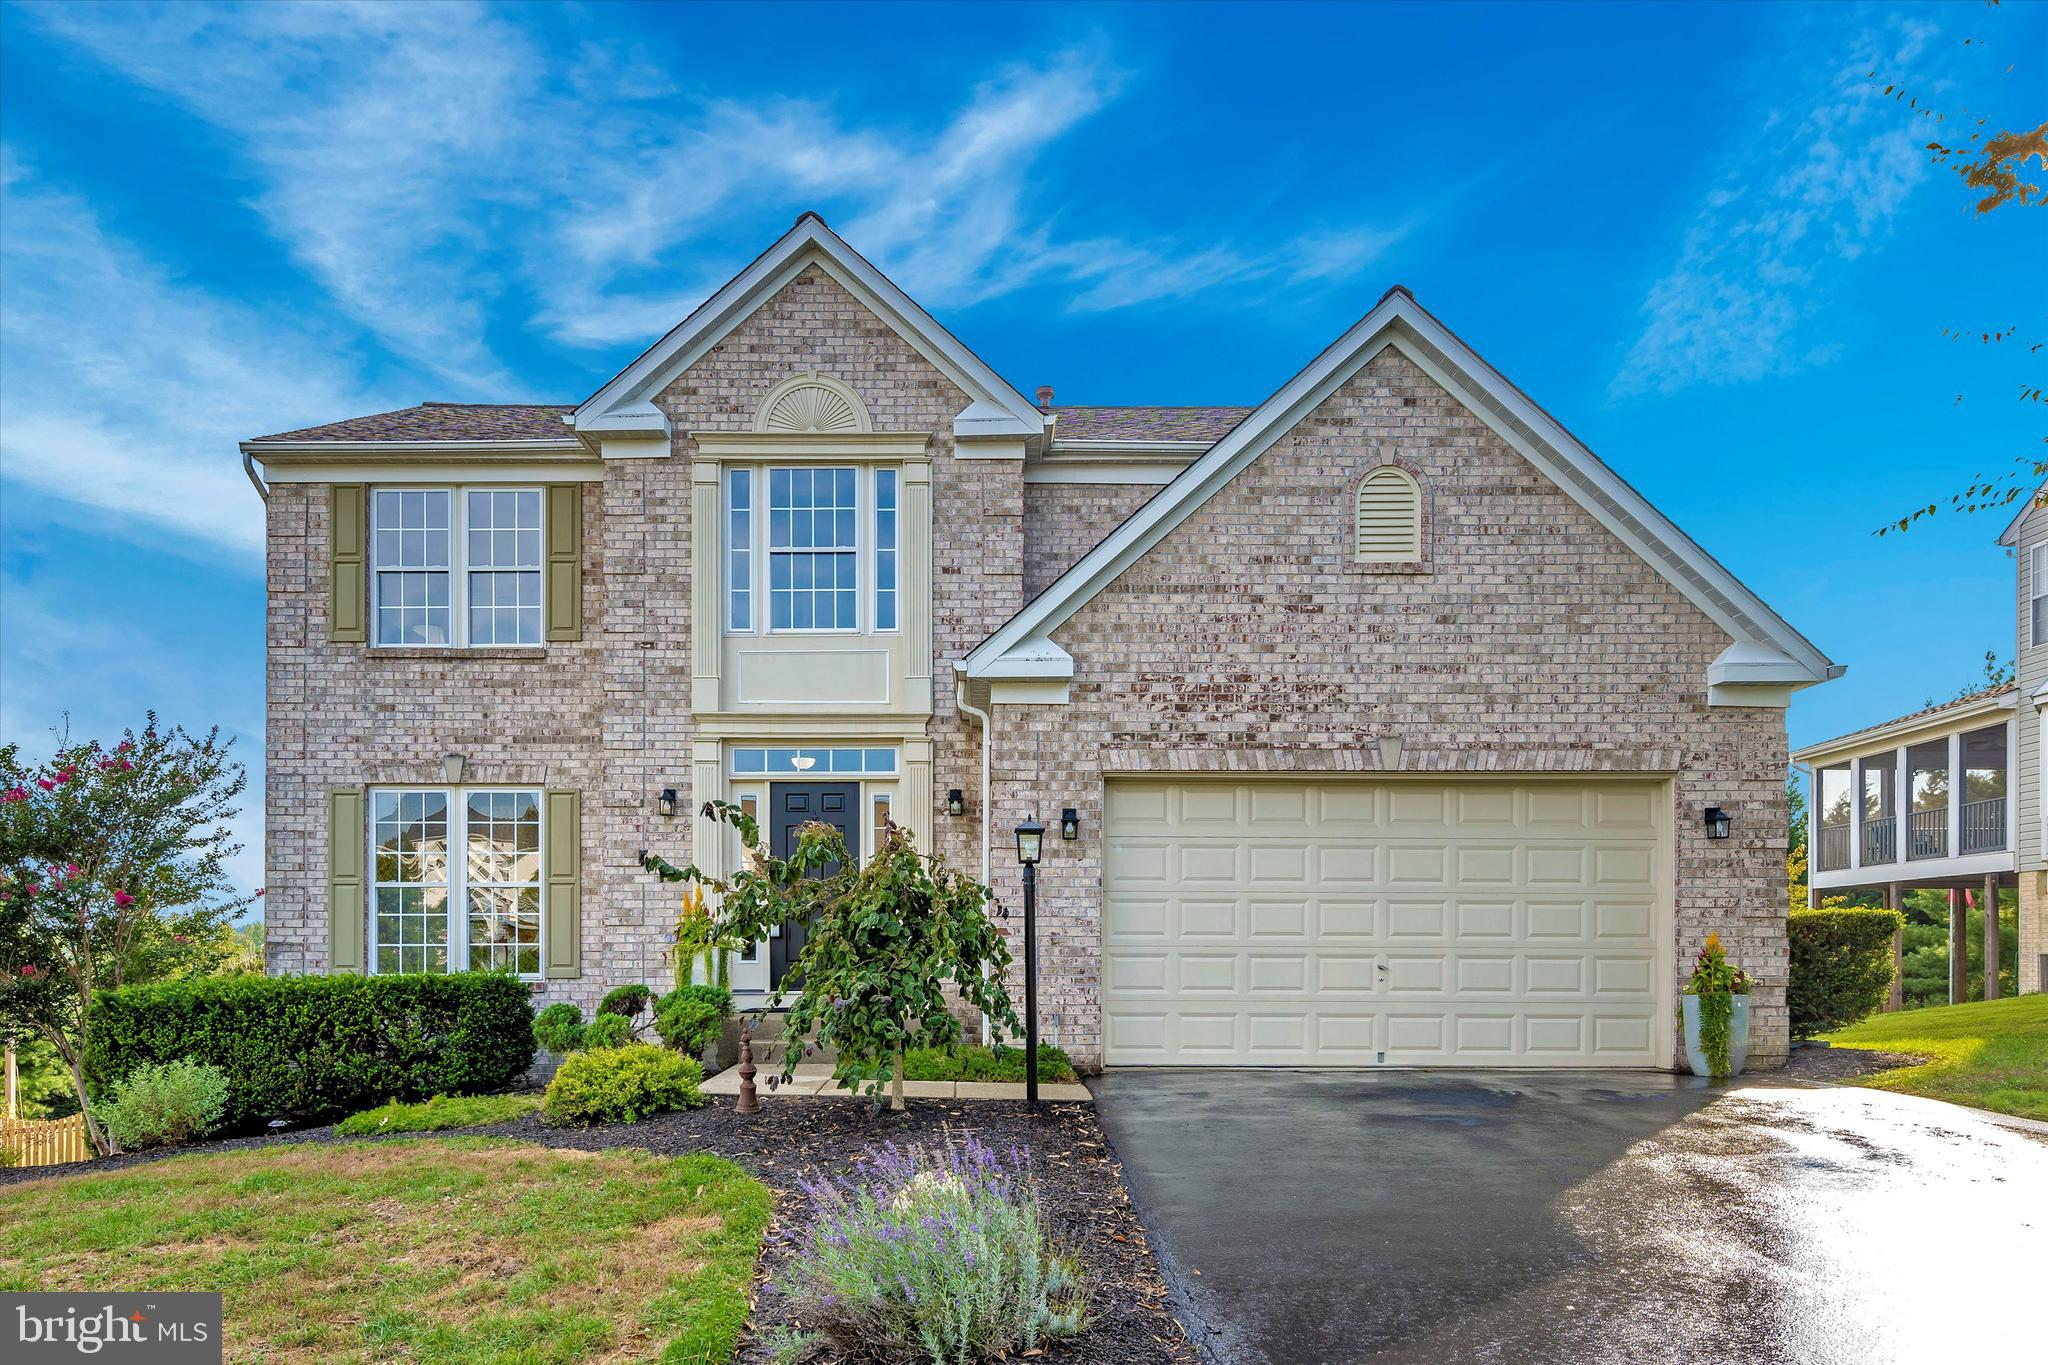 Talk about WOW factor, this home has surpassed HGTV!   This gorgeously updated Belvedere model will